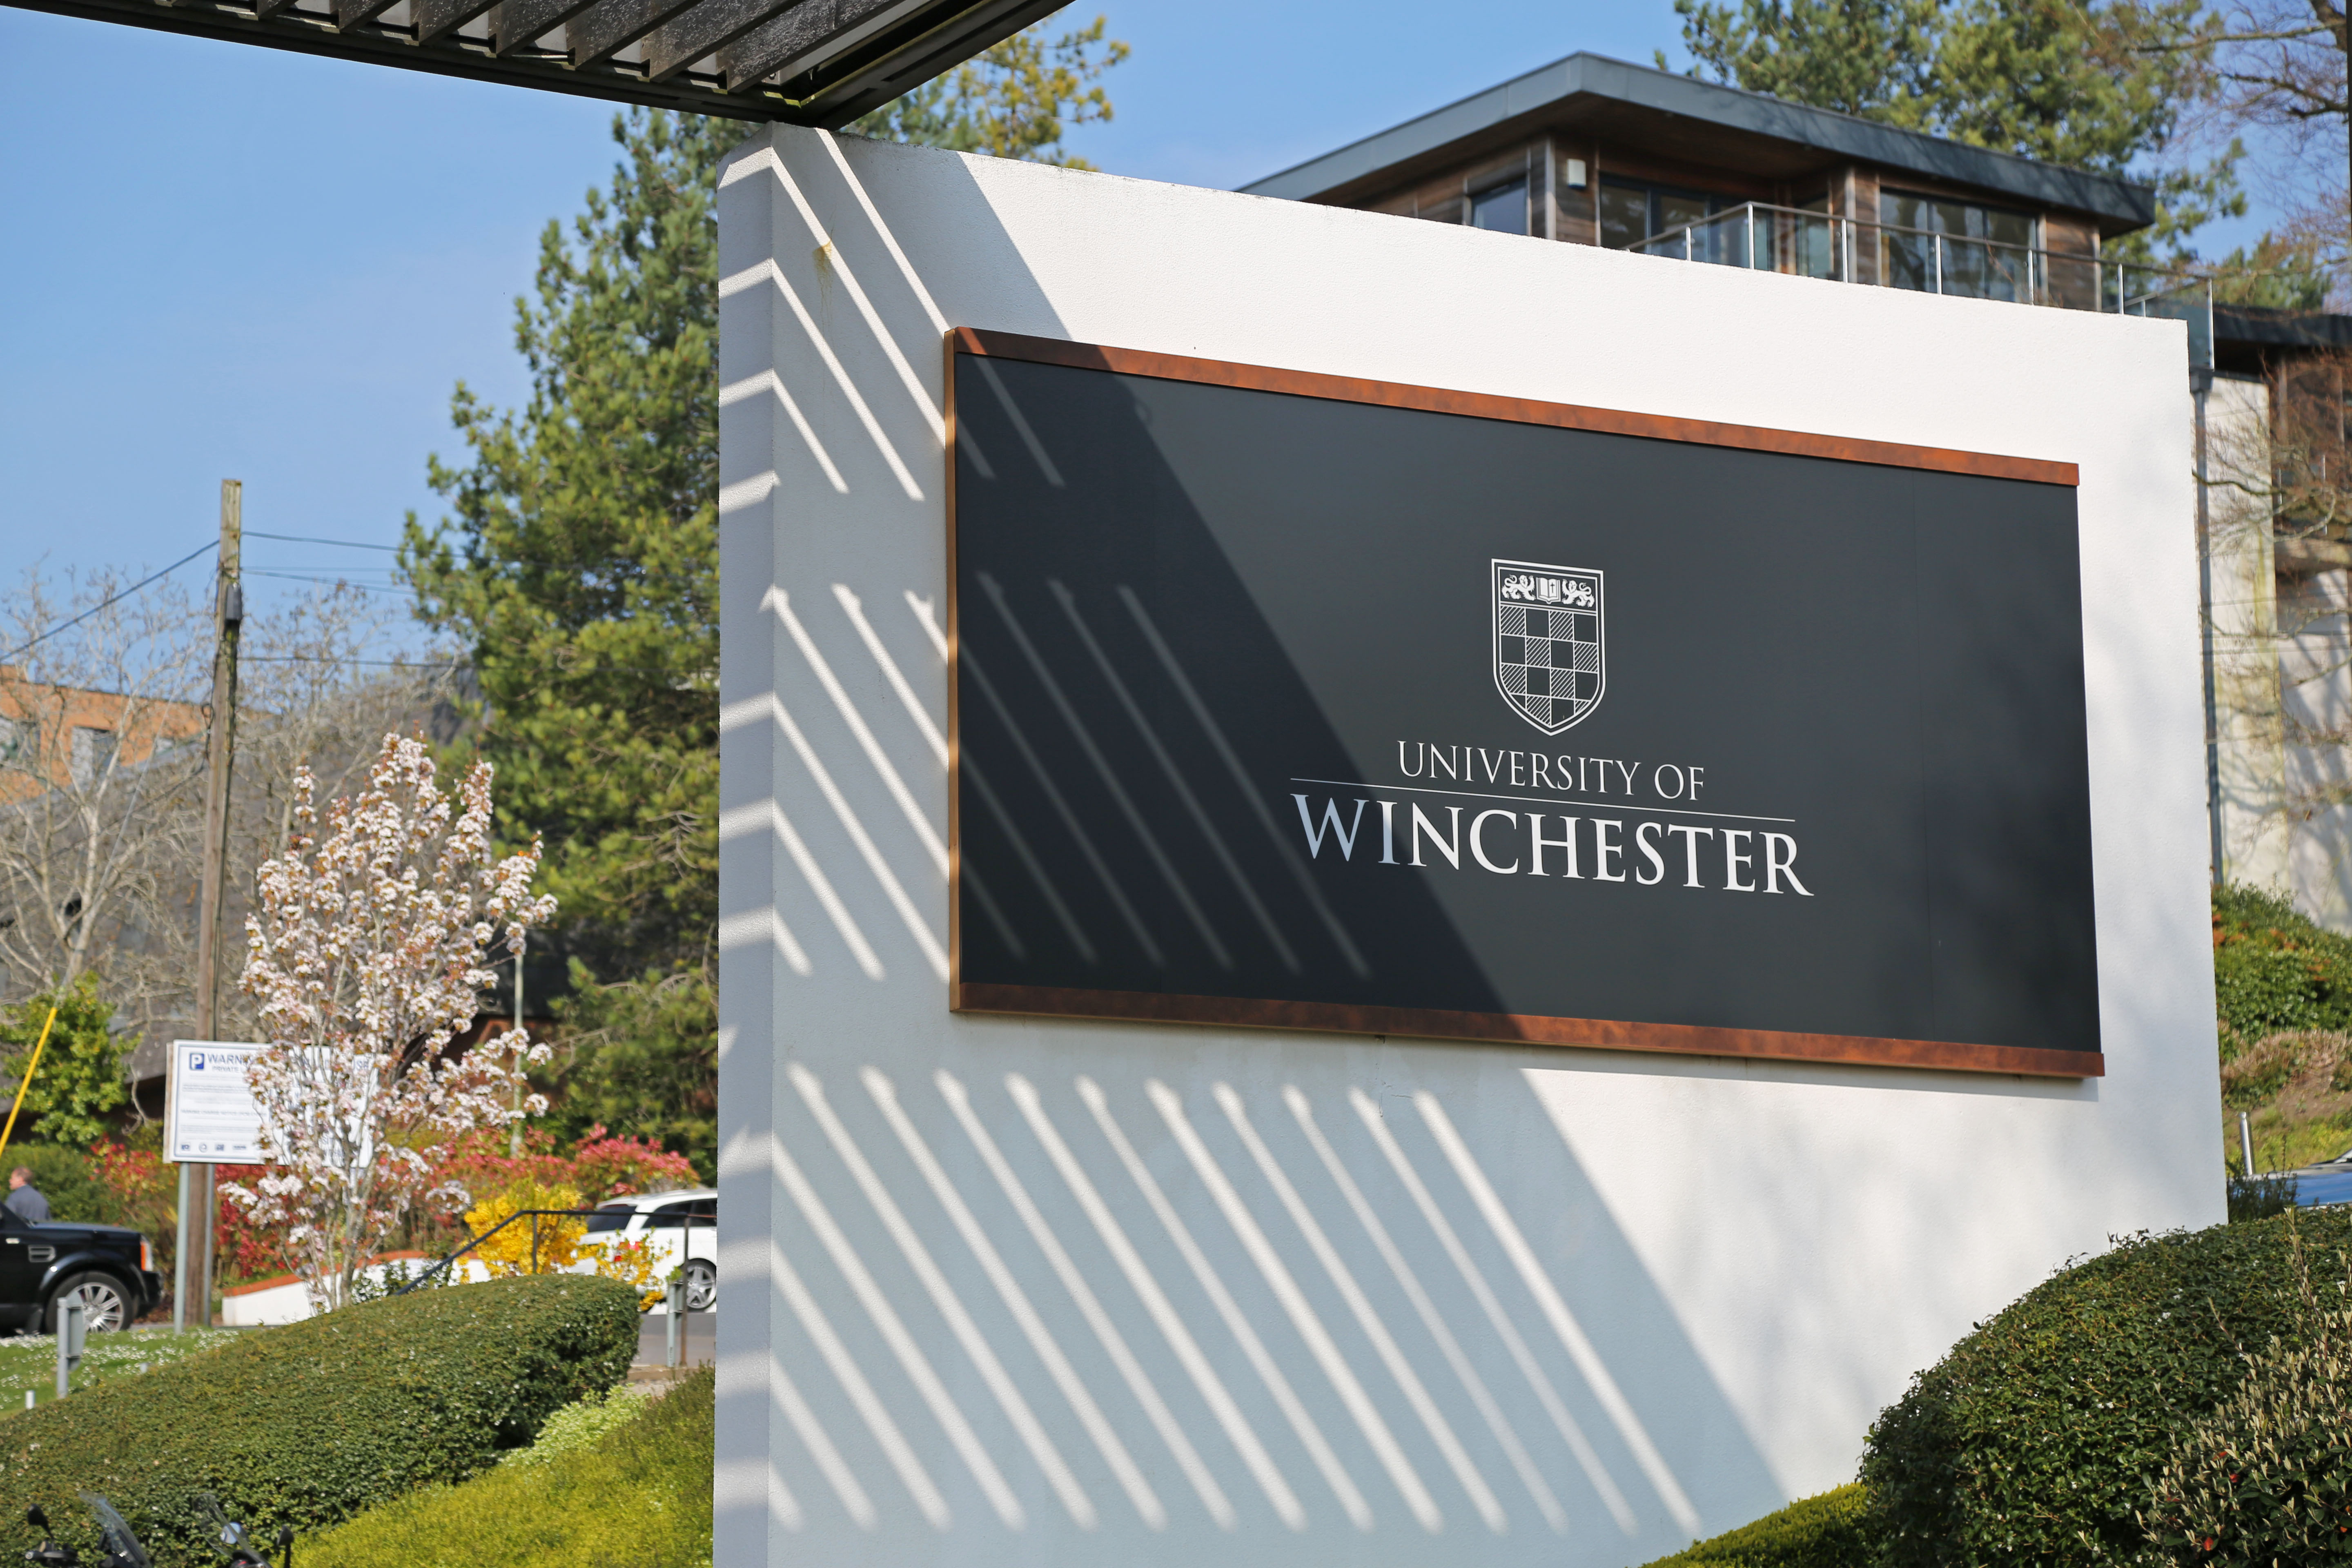 Picture of the main campus sign with 'University of Winchester' and crest